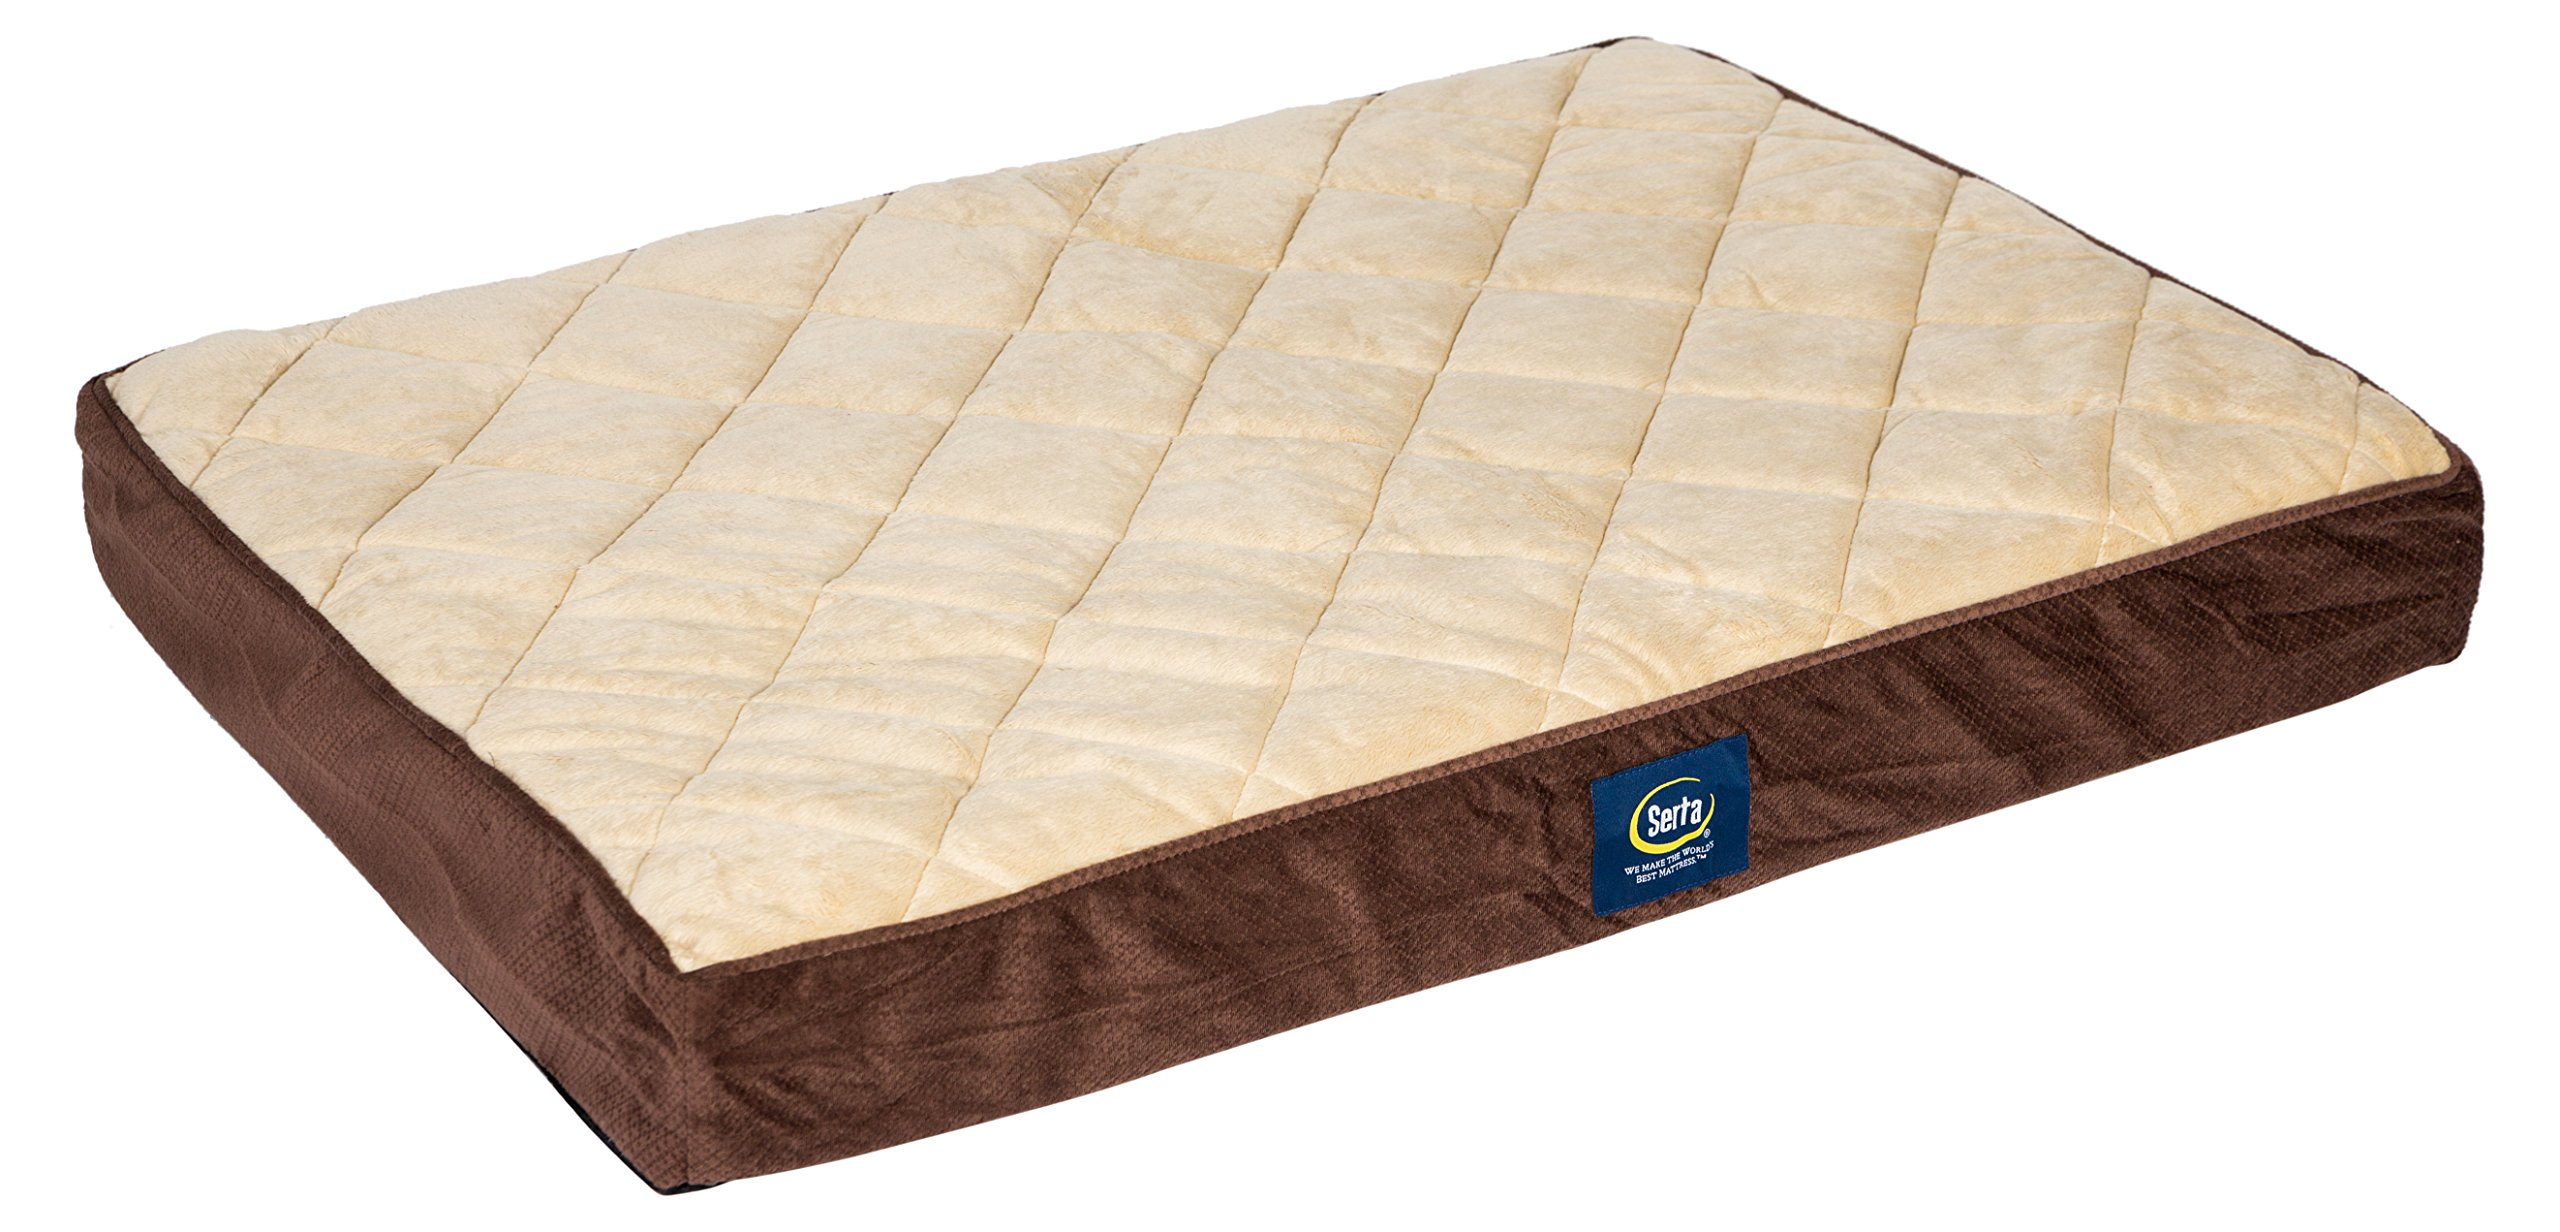 Serta Orthopedic Quilted Pillowtop Dog Bed, Large, Mocha